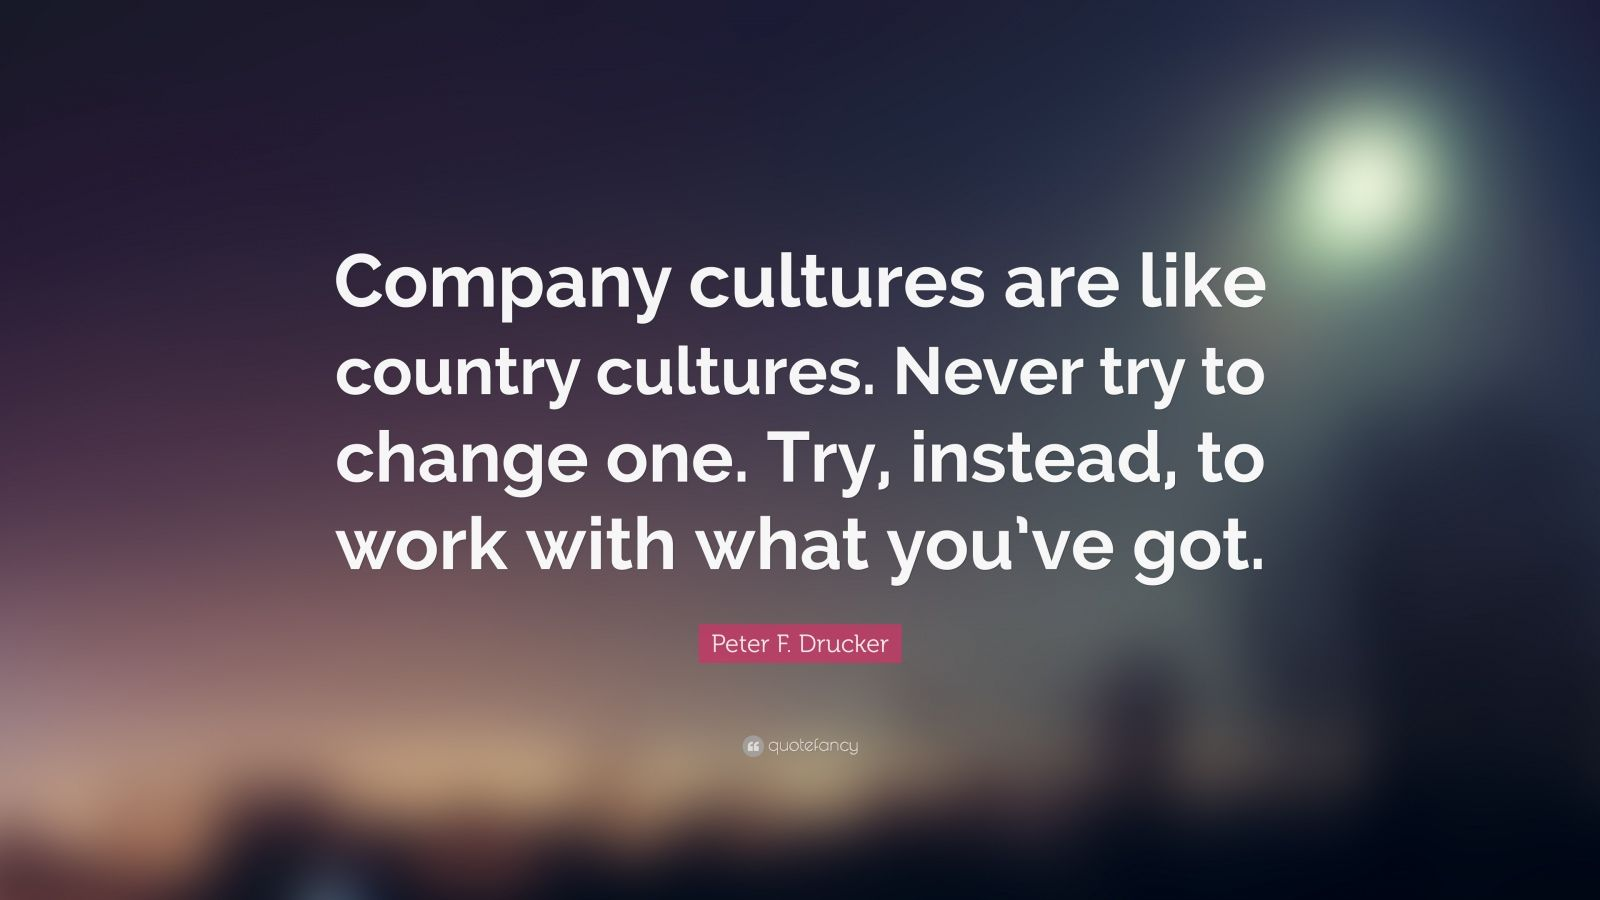 """Peter F. Drucker Quote: """"Company cultures are like country cultures. Never try to change one. Try, instead, to work with what you've got."""""""